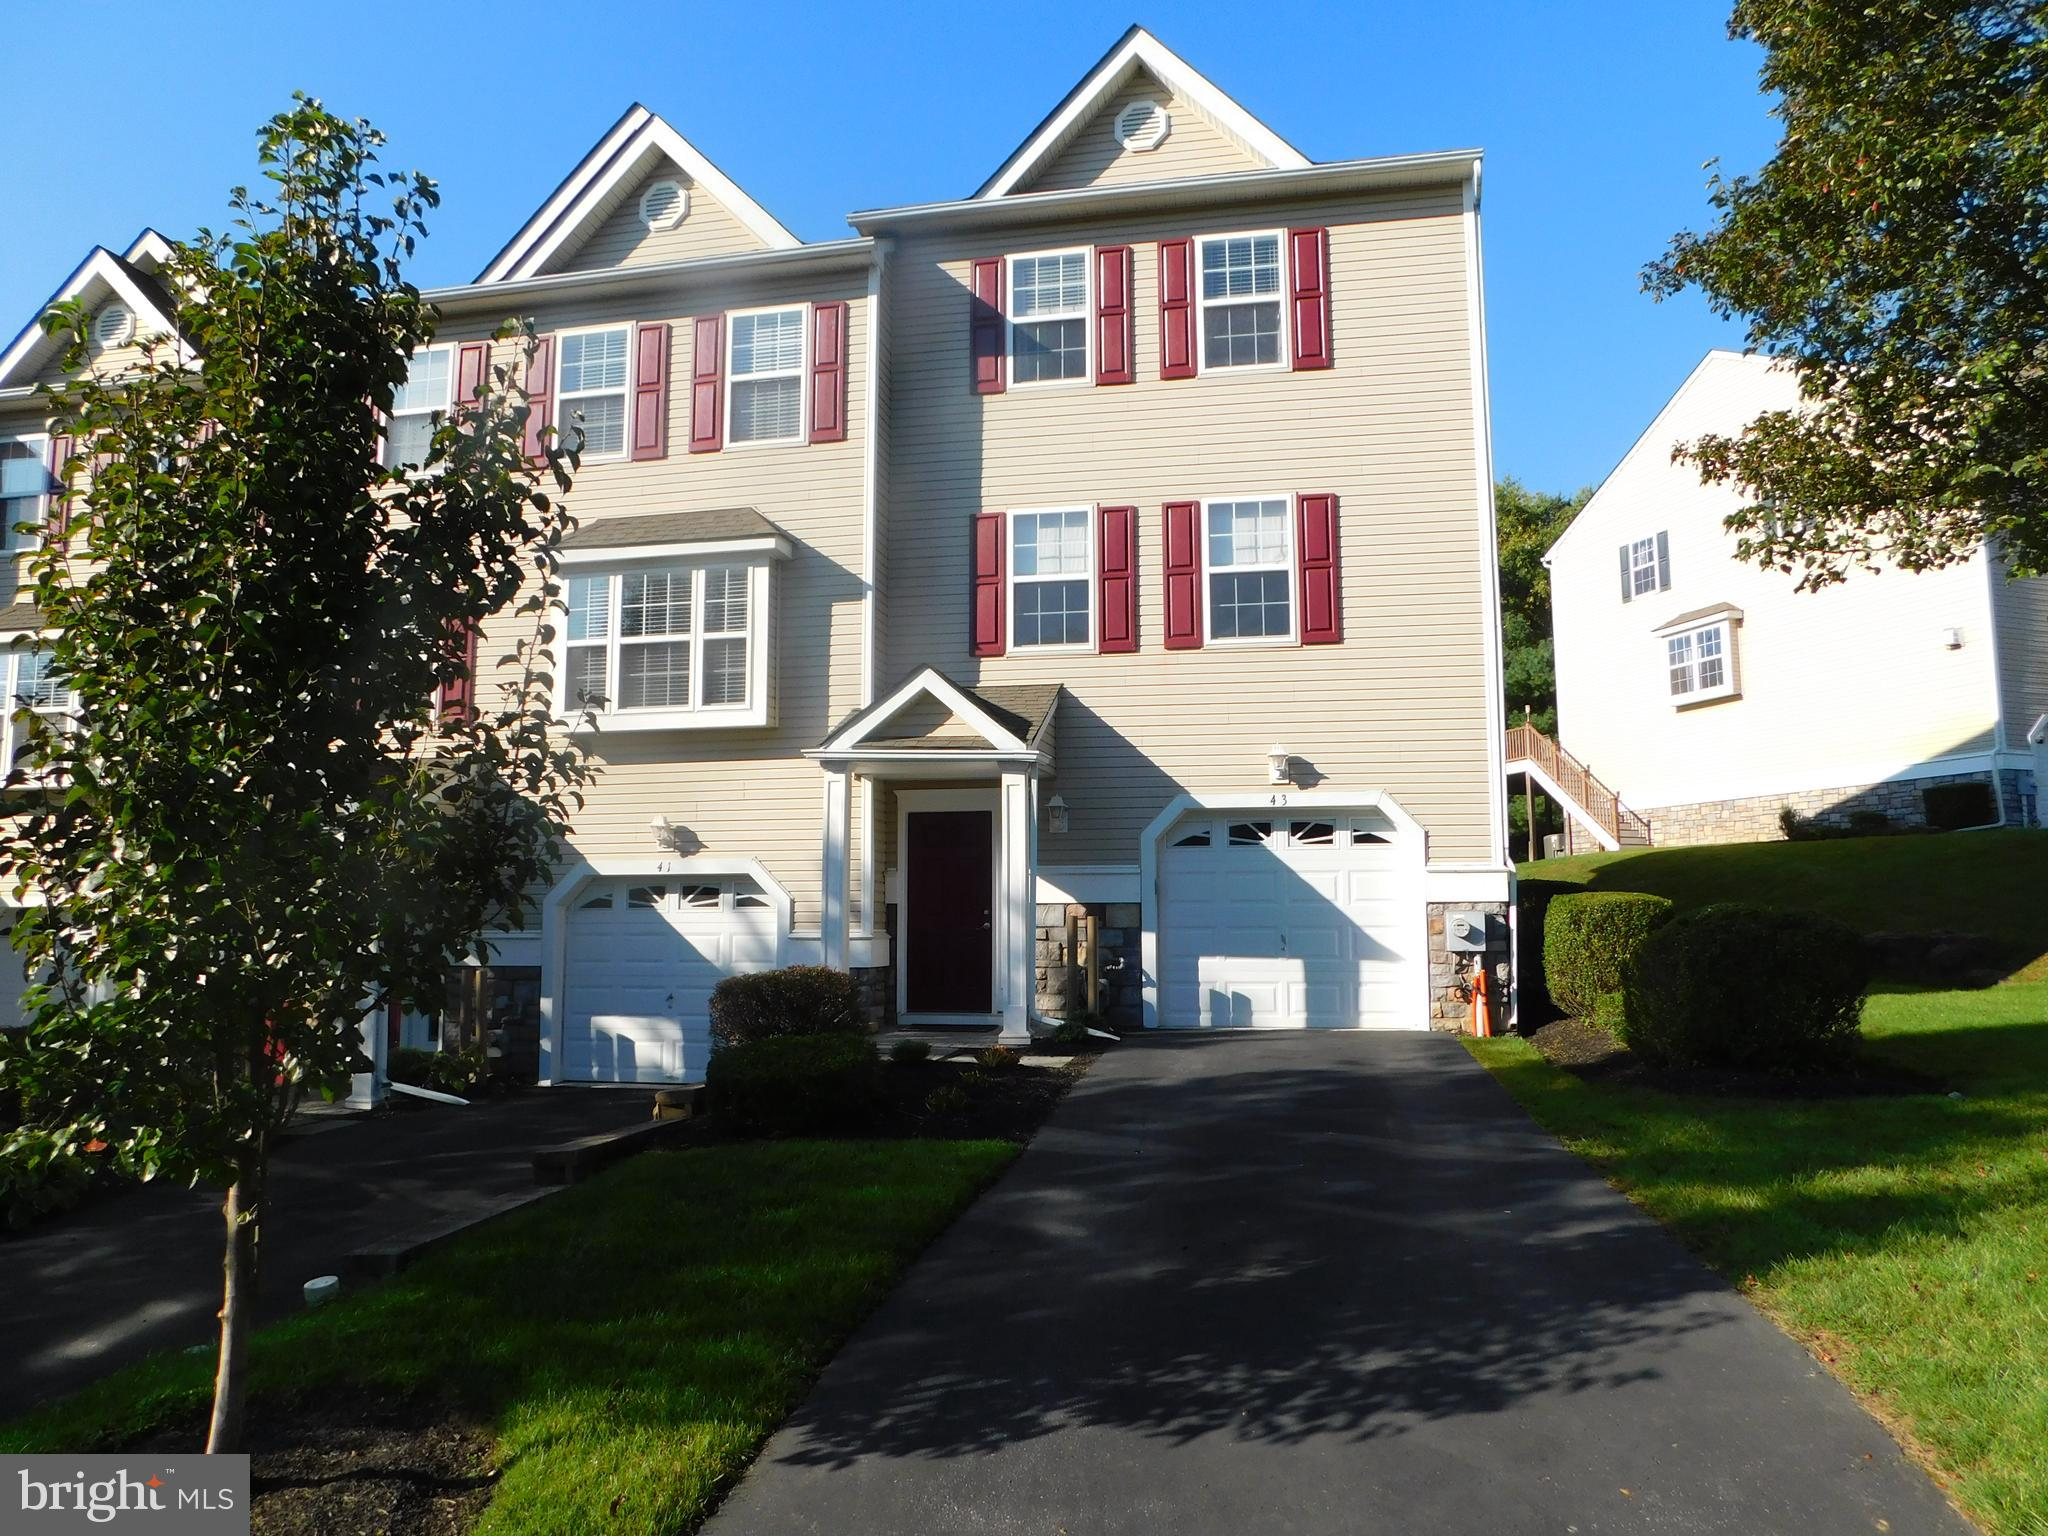 Well maintained end of row townhome in the community of Trotters Run in highly desirable Spring Valley Estates.  Lower level features tiled foyer entrance, family room w/sliders to rear yard, inside access to garage, 1st level has hardwood floors thru out, 9ft ceilings, gas fireplace in living room, formal dining room, large modern eatin kitchen w/42 in cabinets, granite counter top, tiled backsplash and sliders to large rear deck, 2nd level has master bedroom suite w/full bath and walk in closet, two additional nice sized bedrooms and an updated hall bath. Convenient to shopping and transportation.